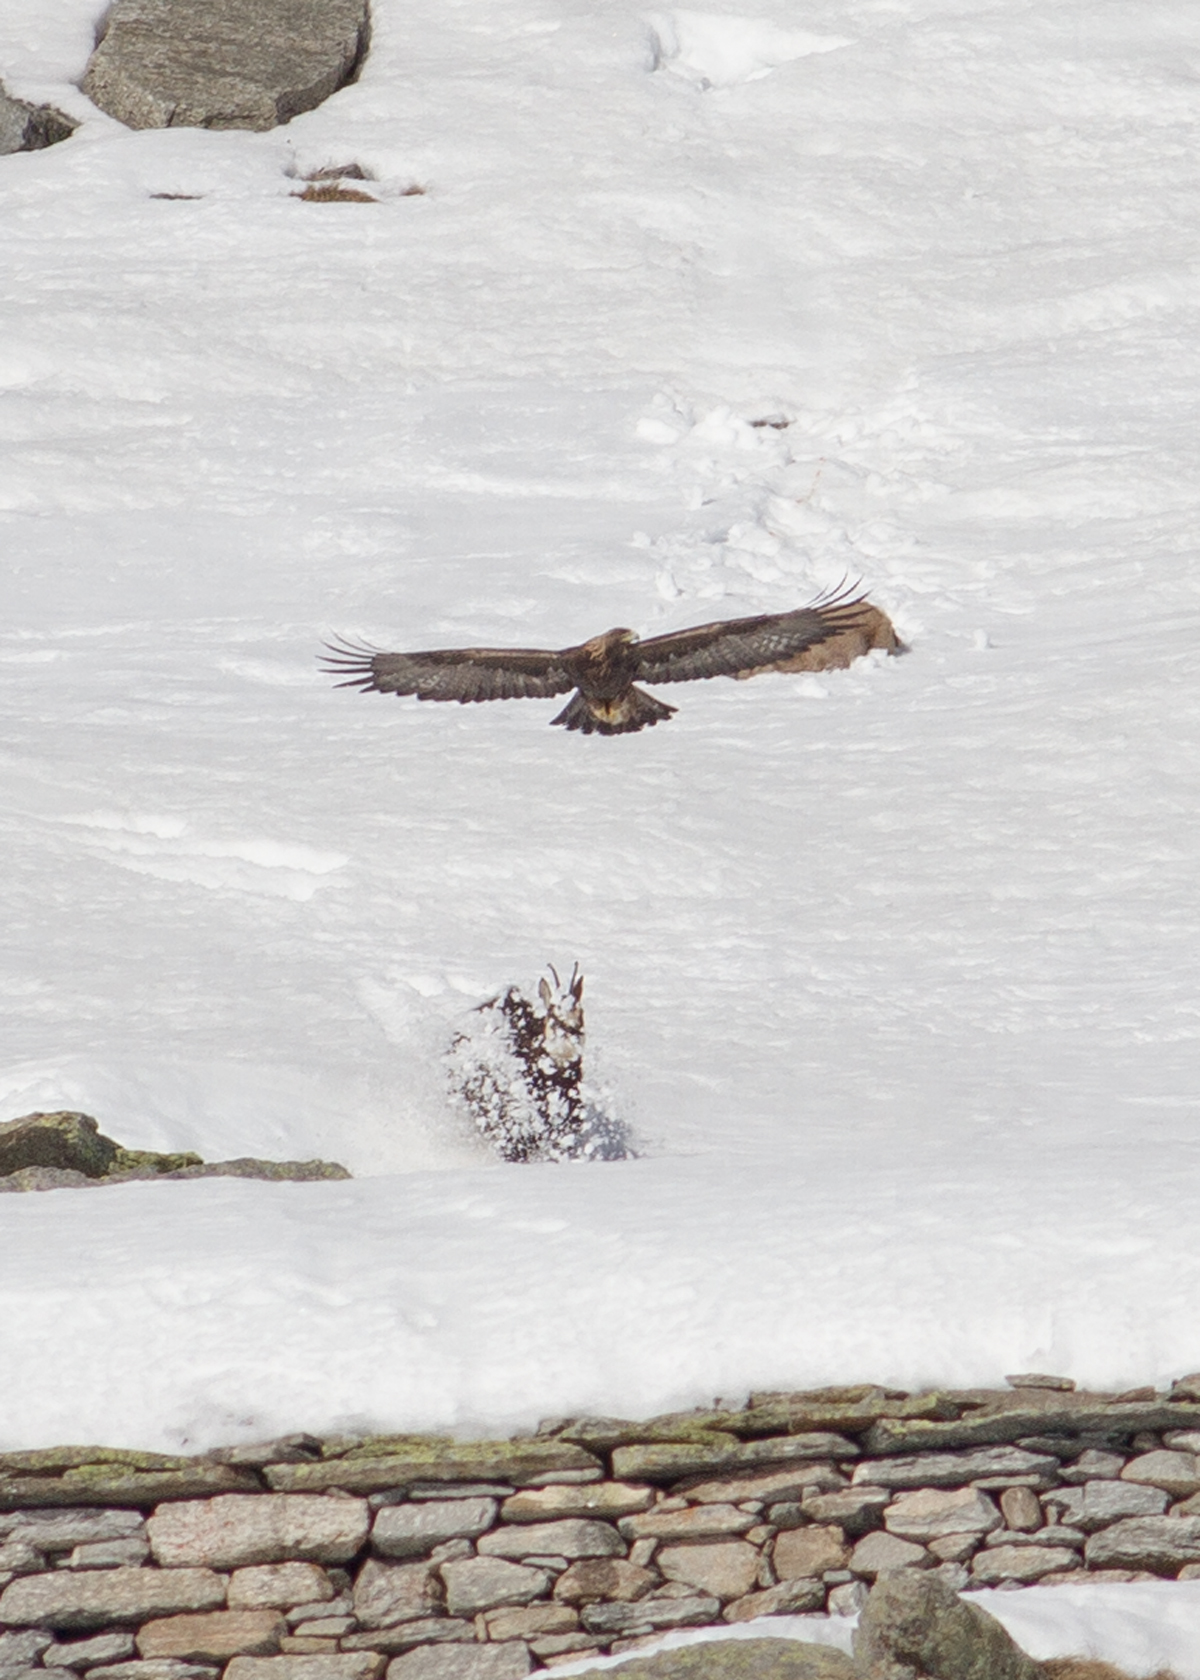 Aquila attacks ibex...